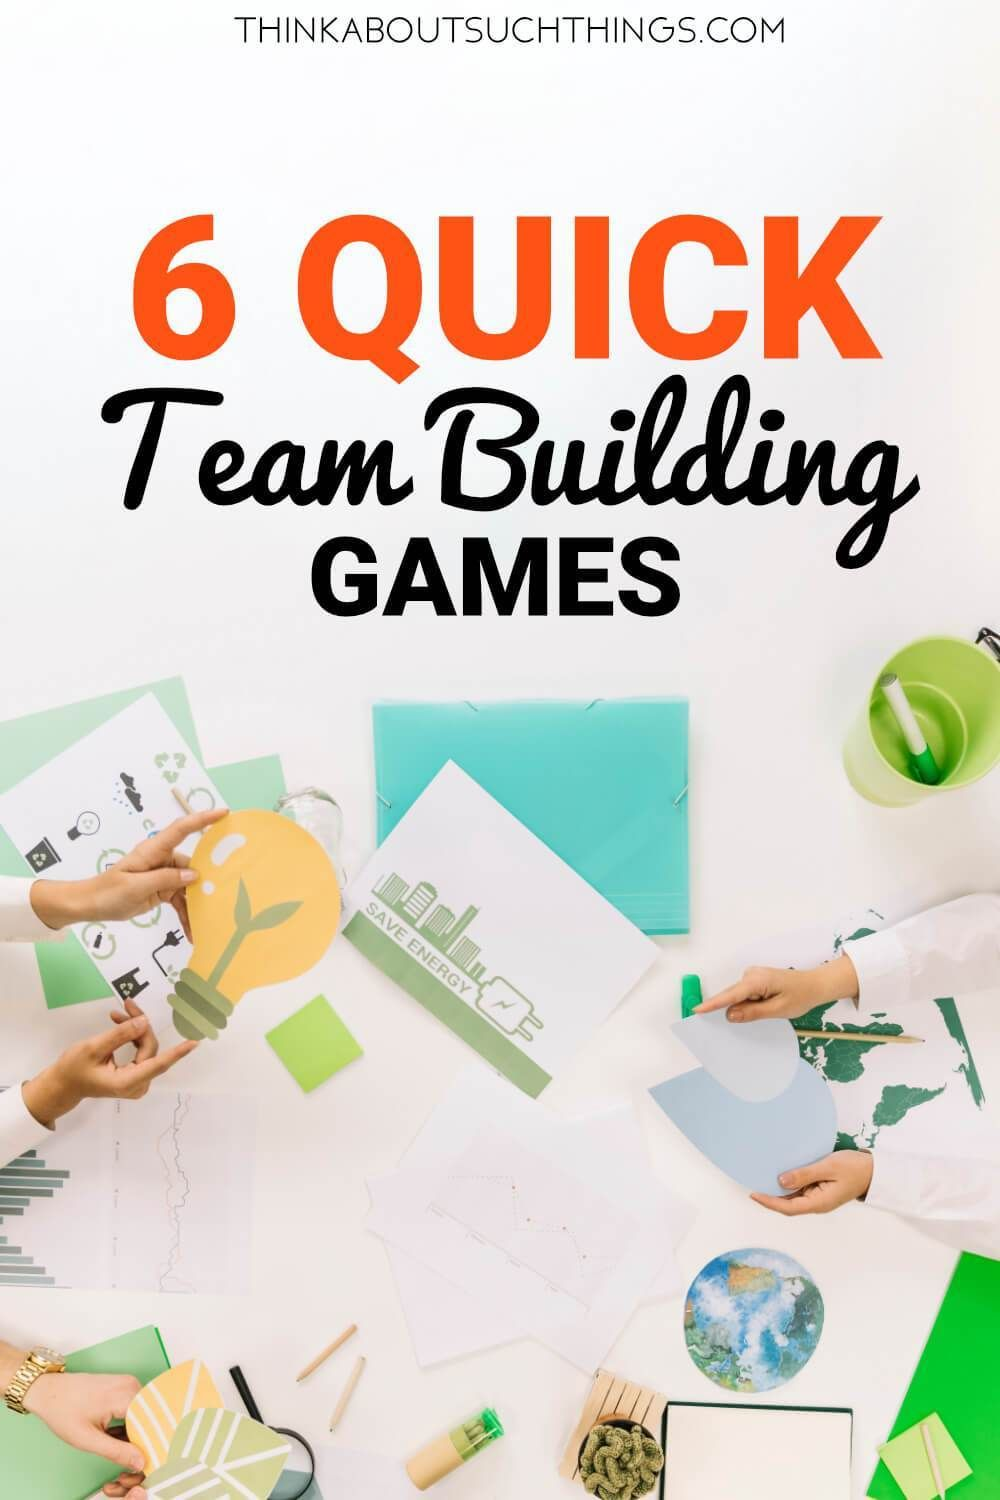 6 Quick Team Building Games To Energize Your Team Team Building Games Work Team Building Activities Quick Team Building Games